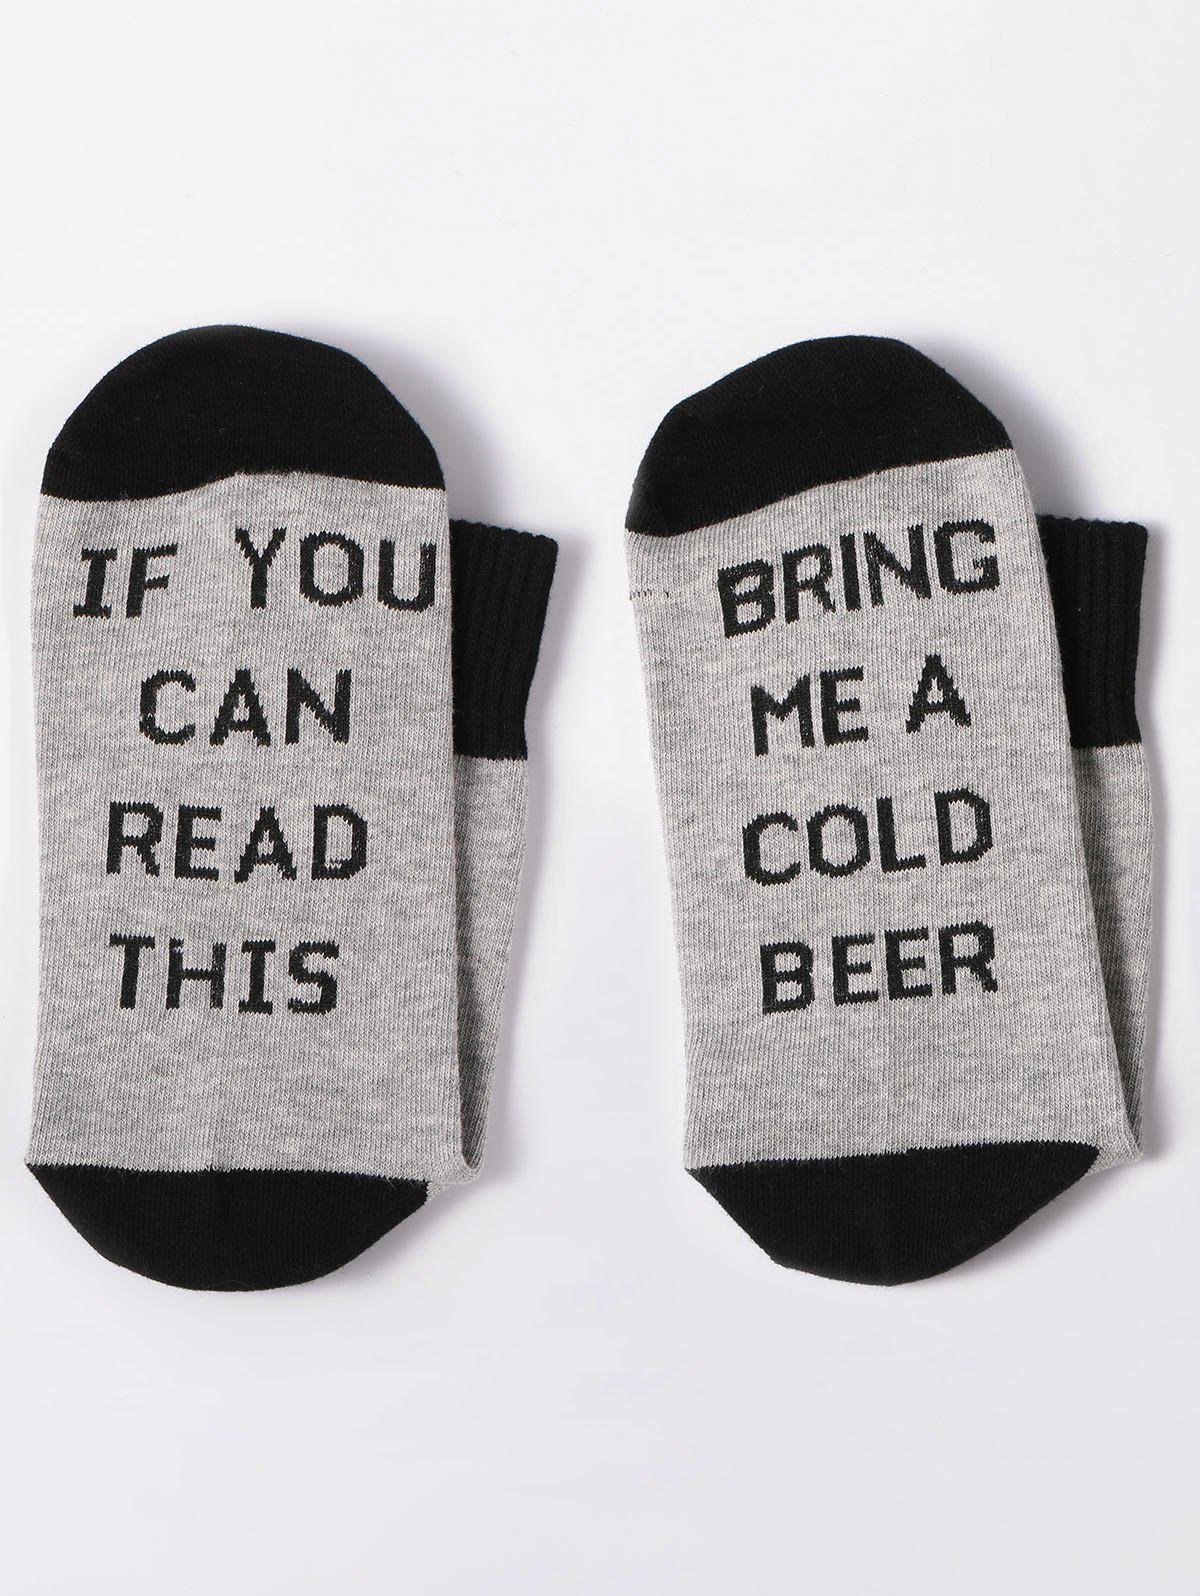 Bring Me A Color Beer Printed Ankle Socks - GRAY